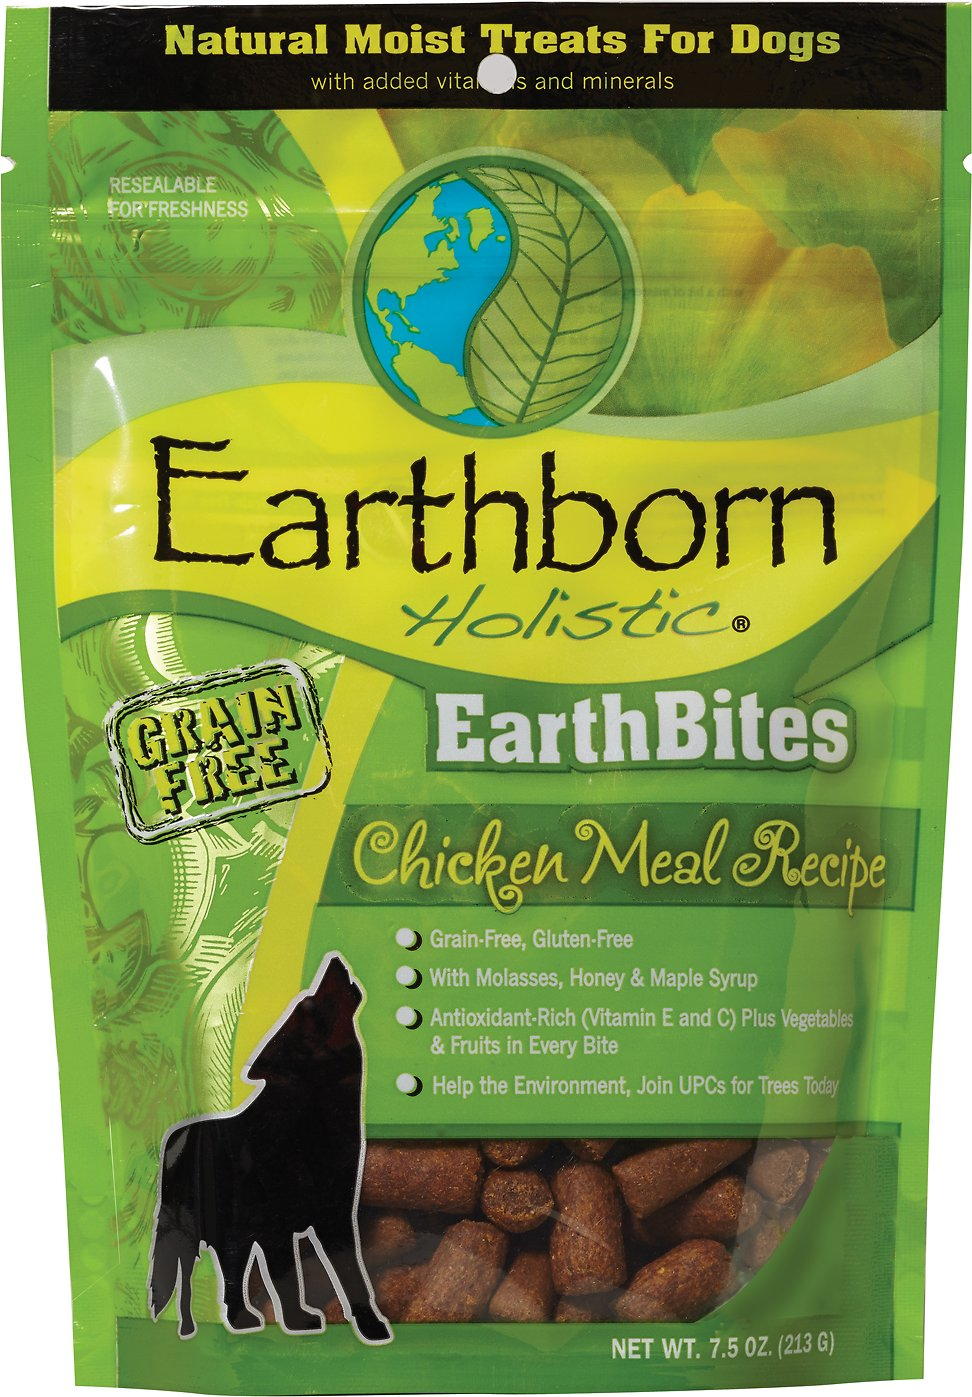 Earthborn Holistic Earthbites Chicken Meal Recipe Natural Moist